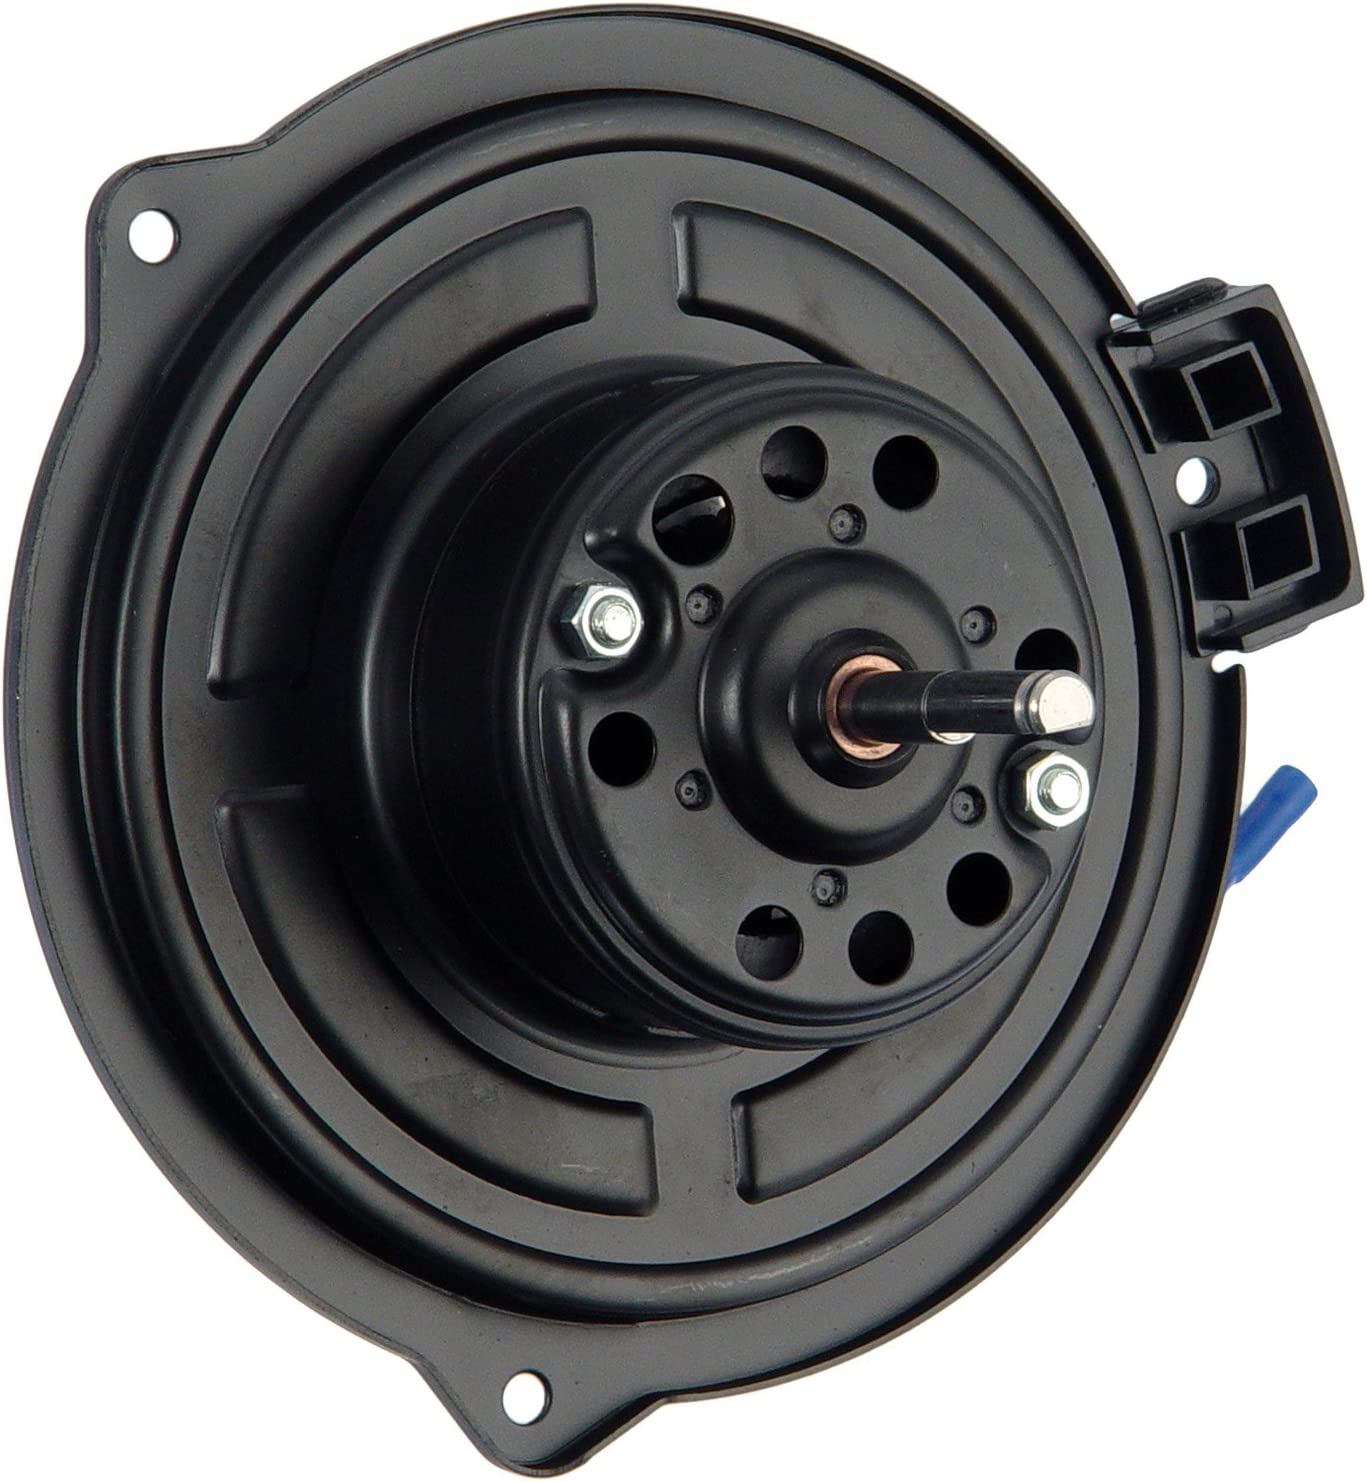 Four Seasons//Trumark 35634 Blower Motor without Wheel